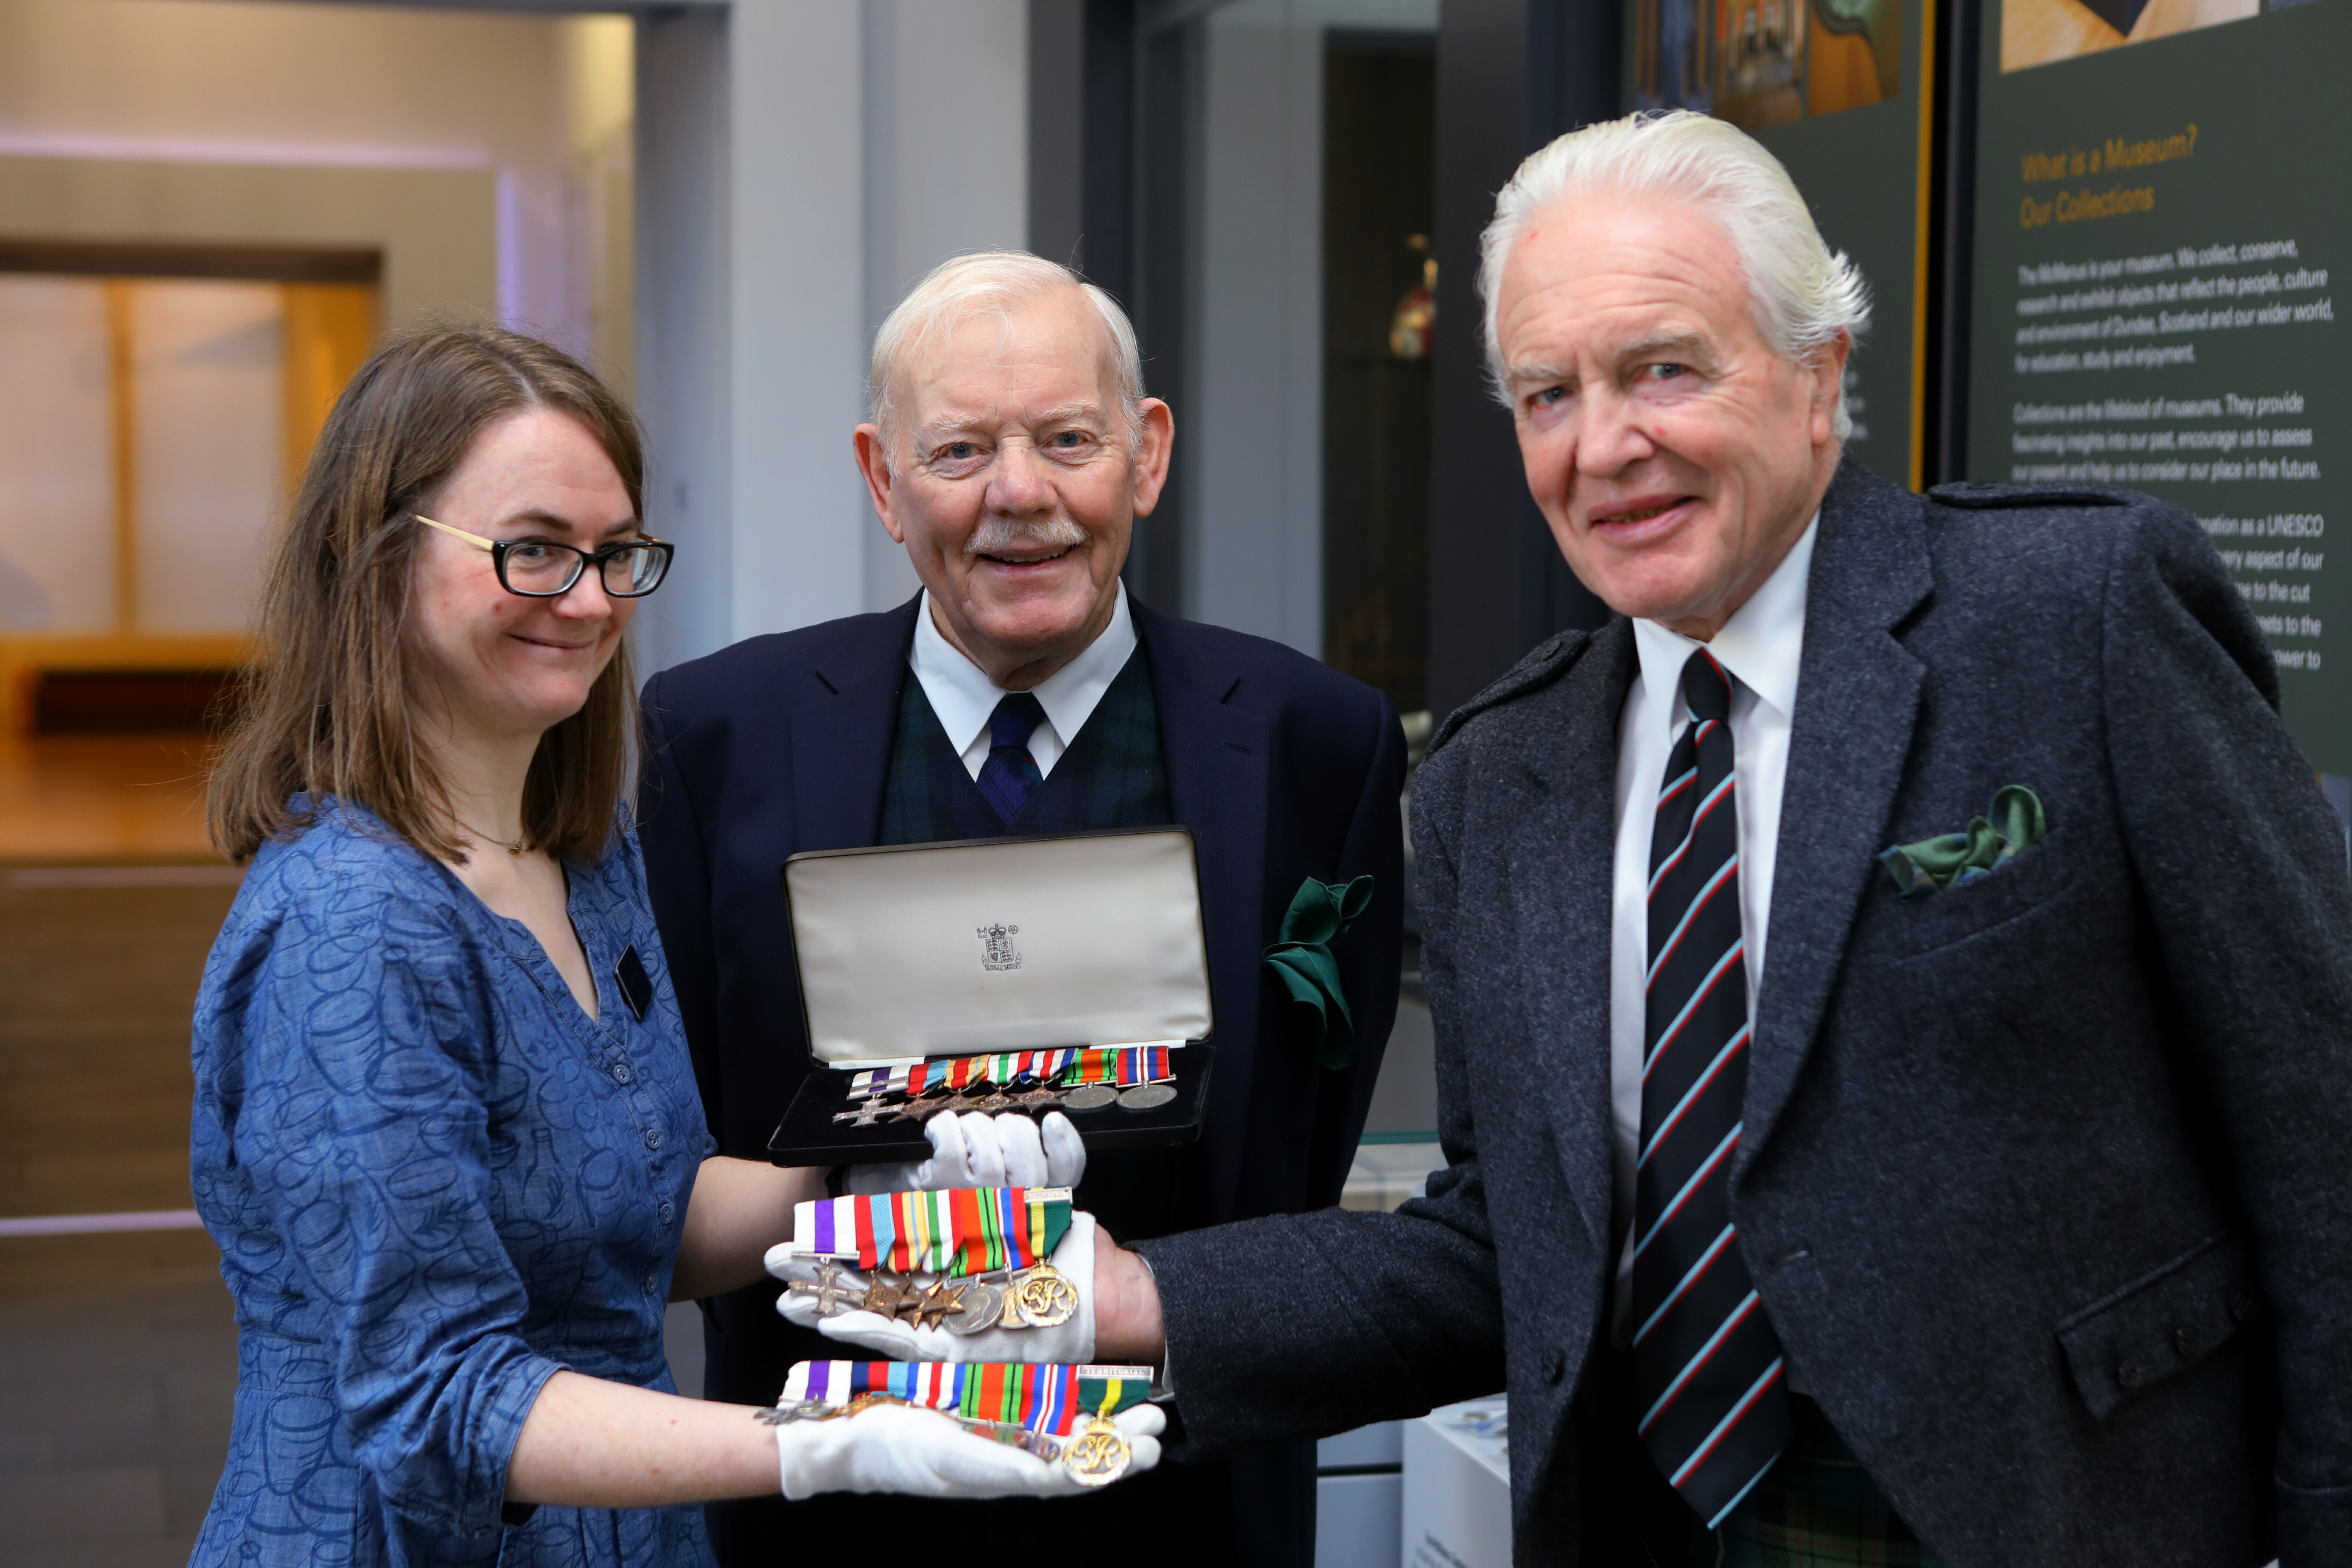 Carly Cooper, Curator, with Ian Rae, right, and Sinclair Aitken, centre, Chairman of LACD, holding the medals that were handed over to the McManus Galleries.